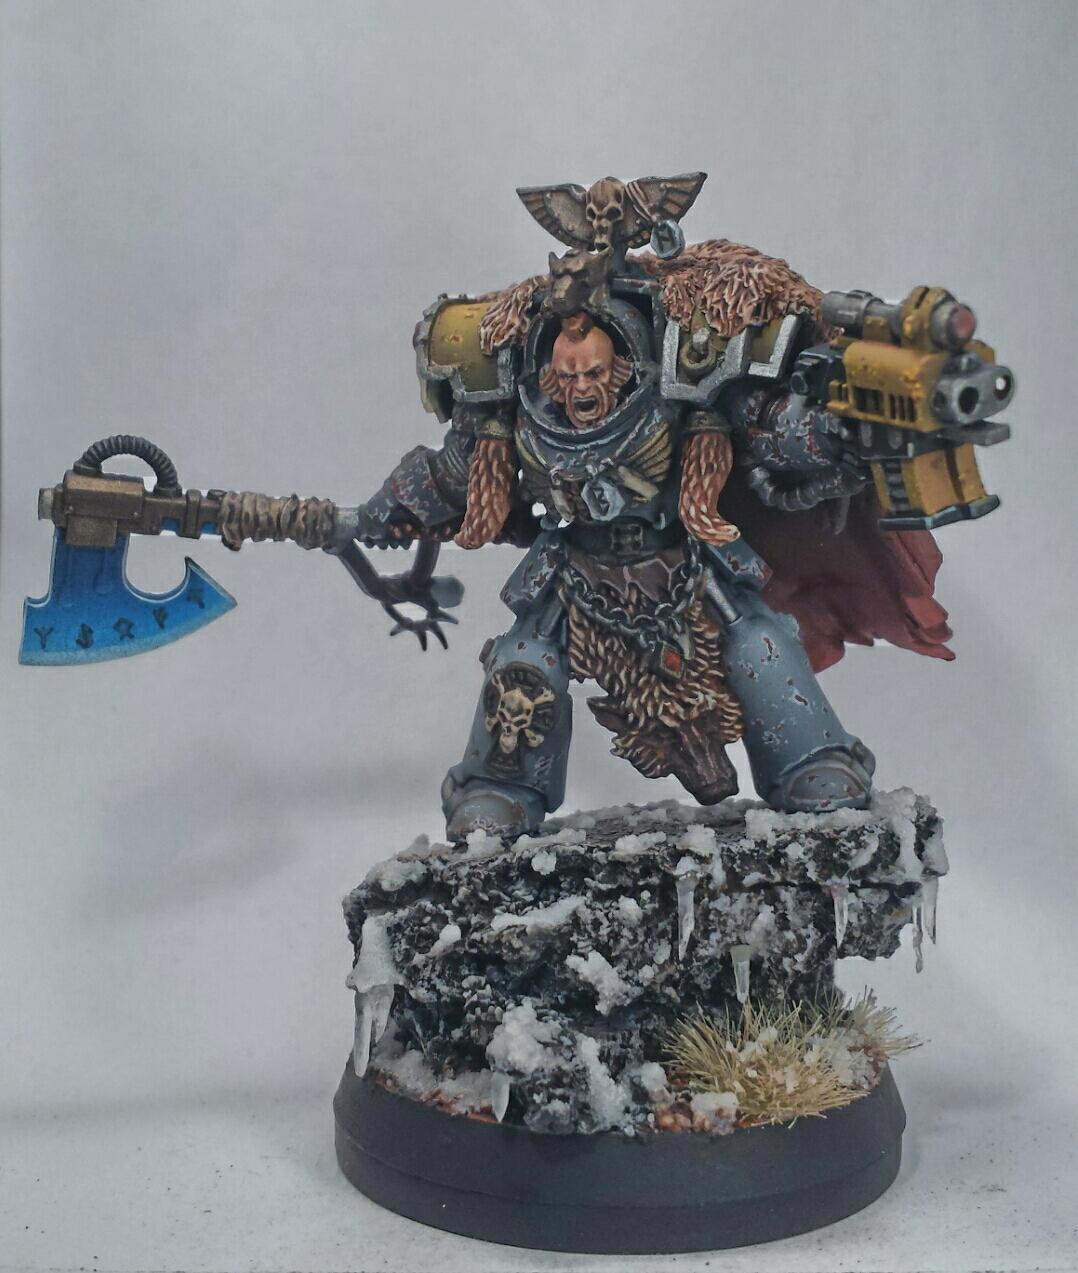 Frost, Great Wolf, Greenstuff, Heresy, Kitbash, Lord, Snow, Space Wolves, Terminator Armor